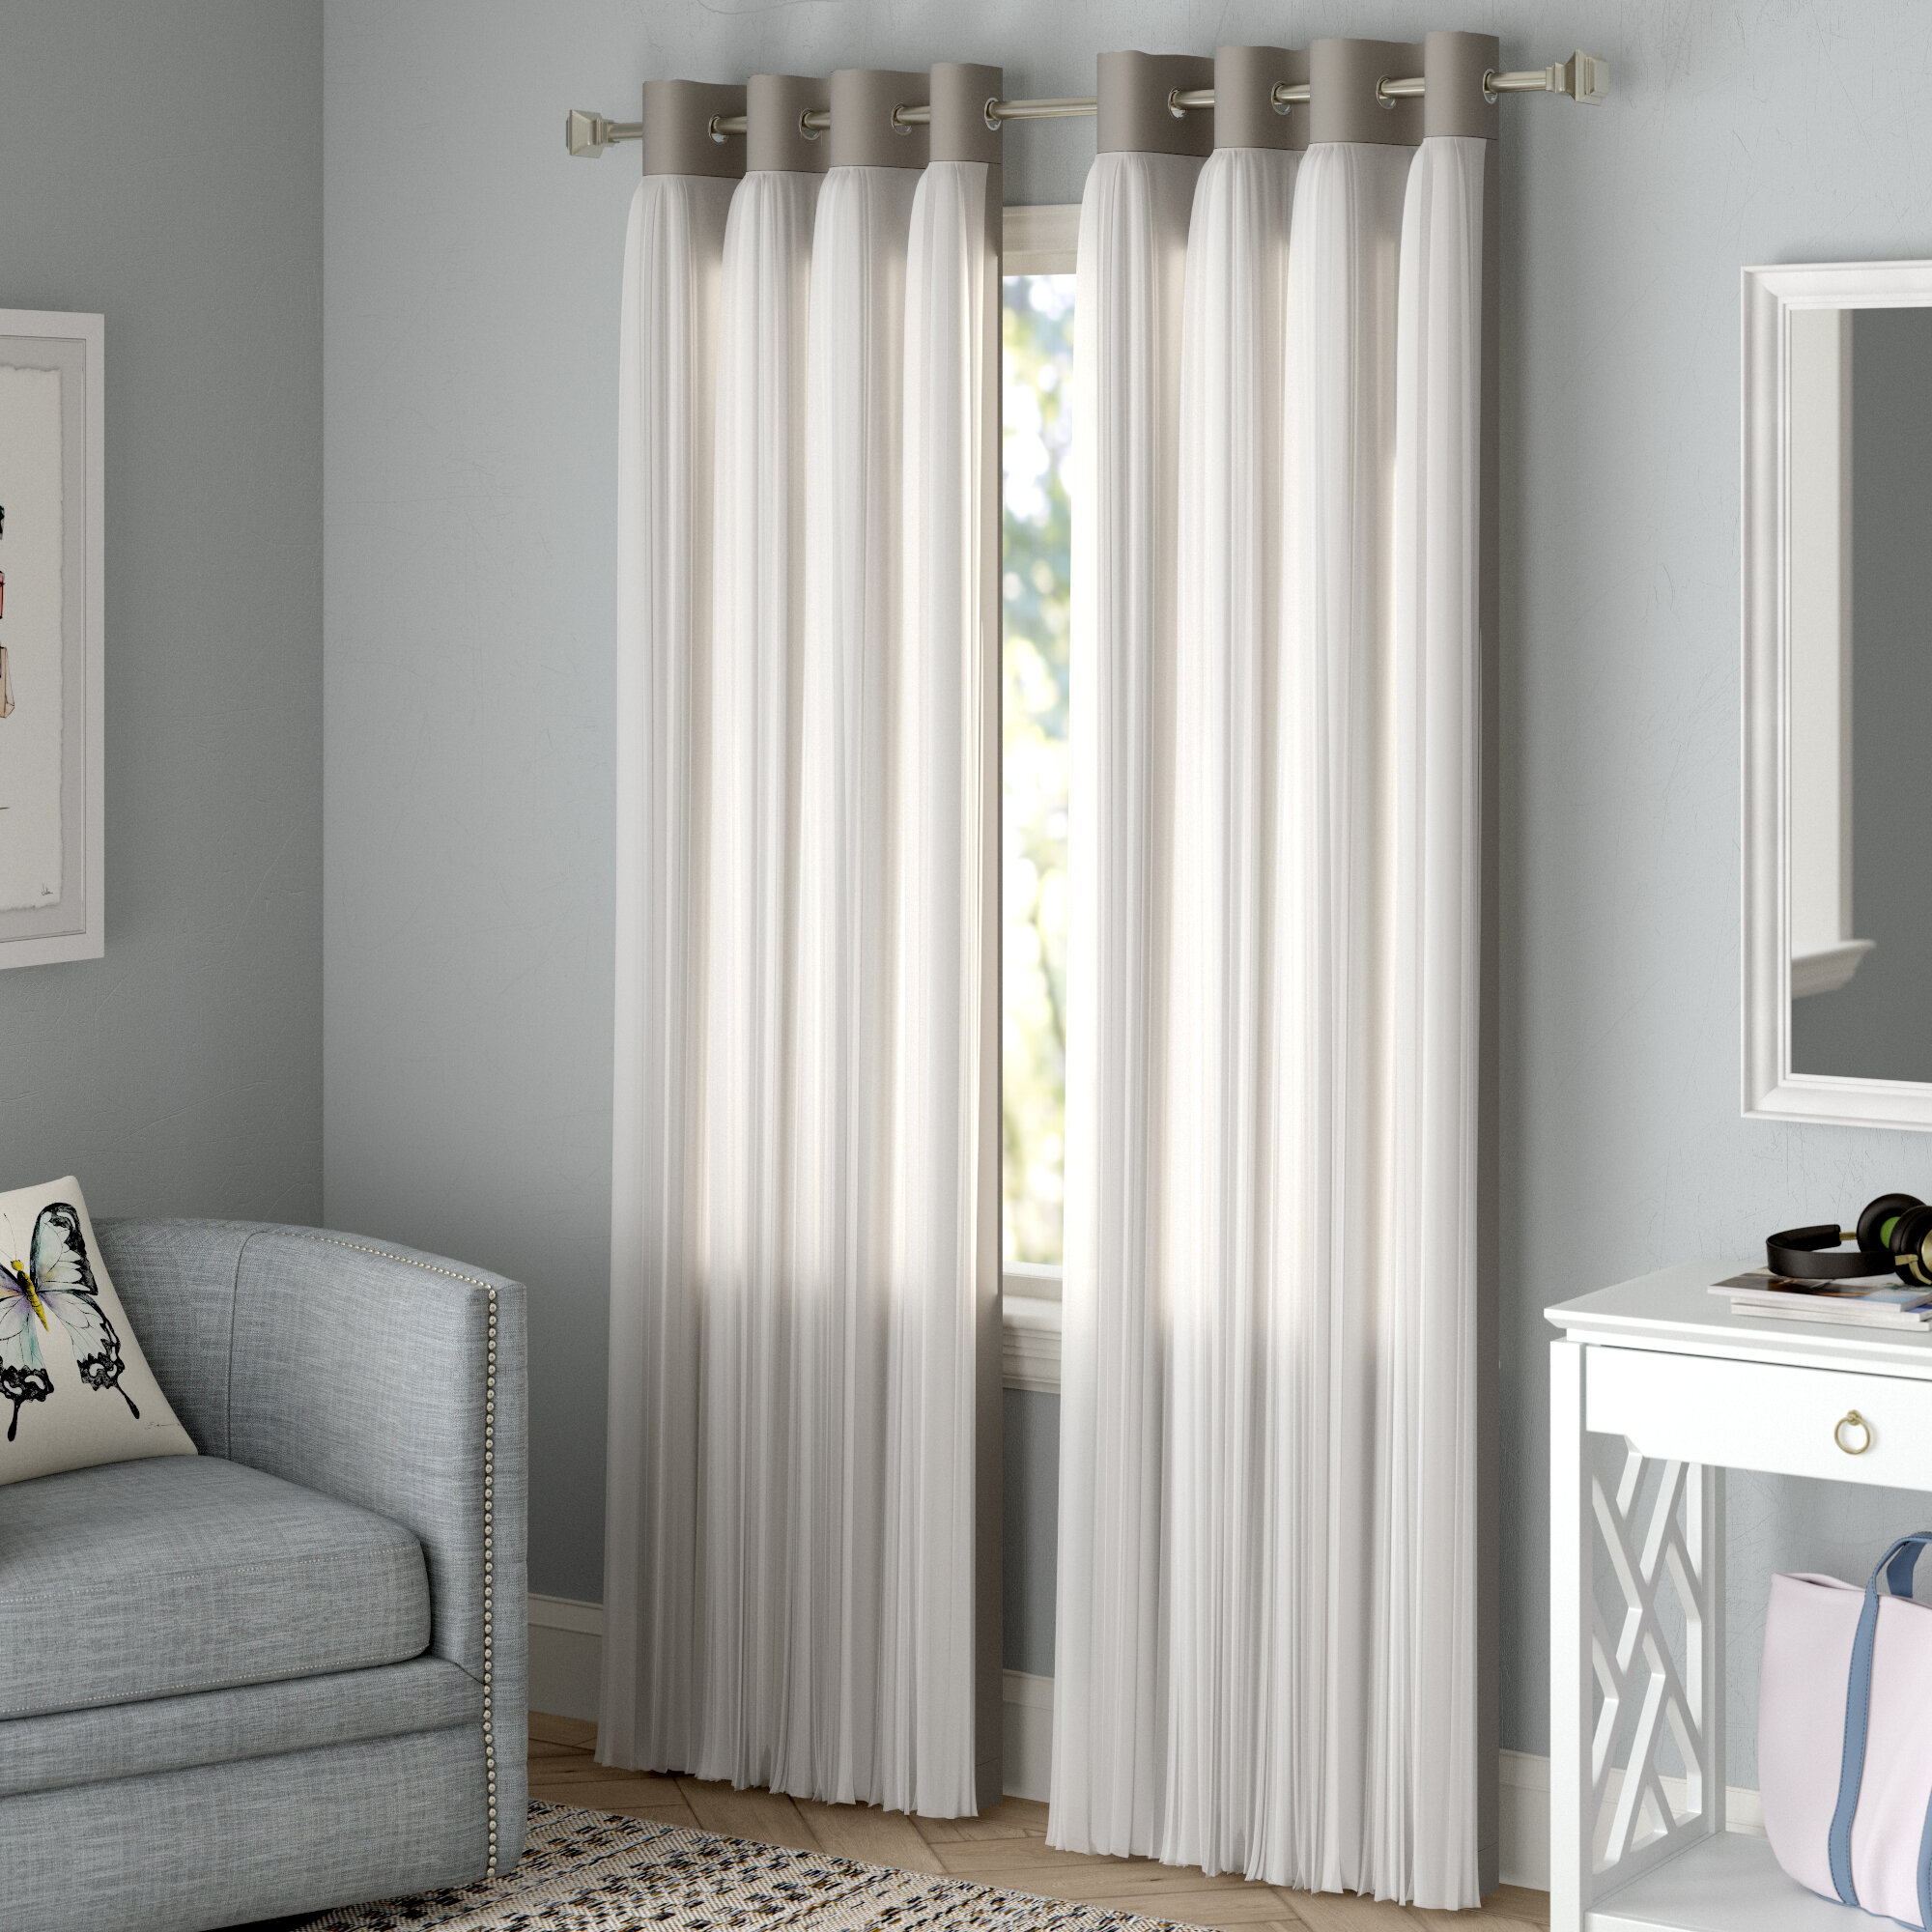 Brockham Solid Blackout Thermal Grommet Curtain Panels With Regard To Solid Cotton True Blackout Curtain Panels (View 20 of 30)